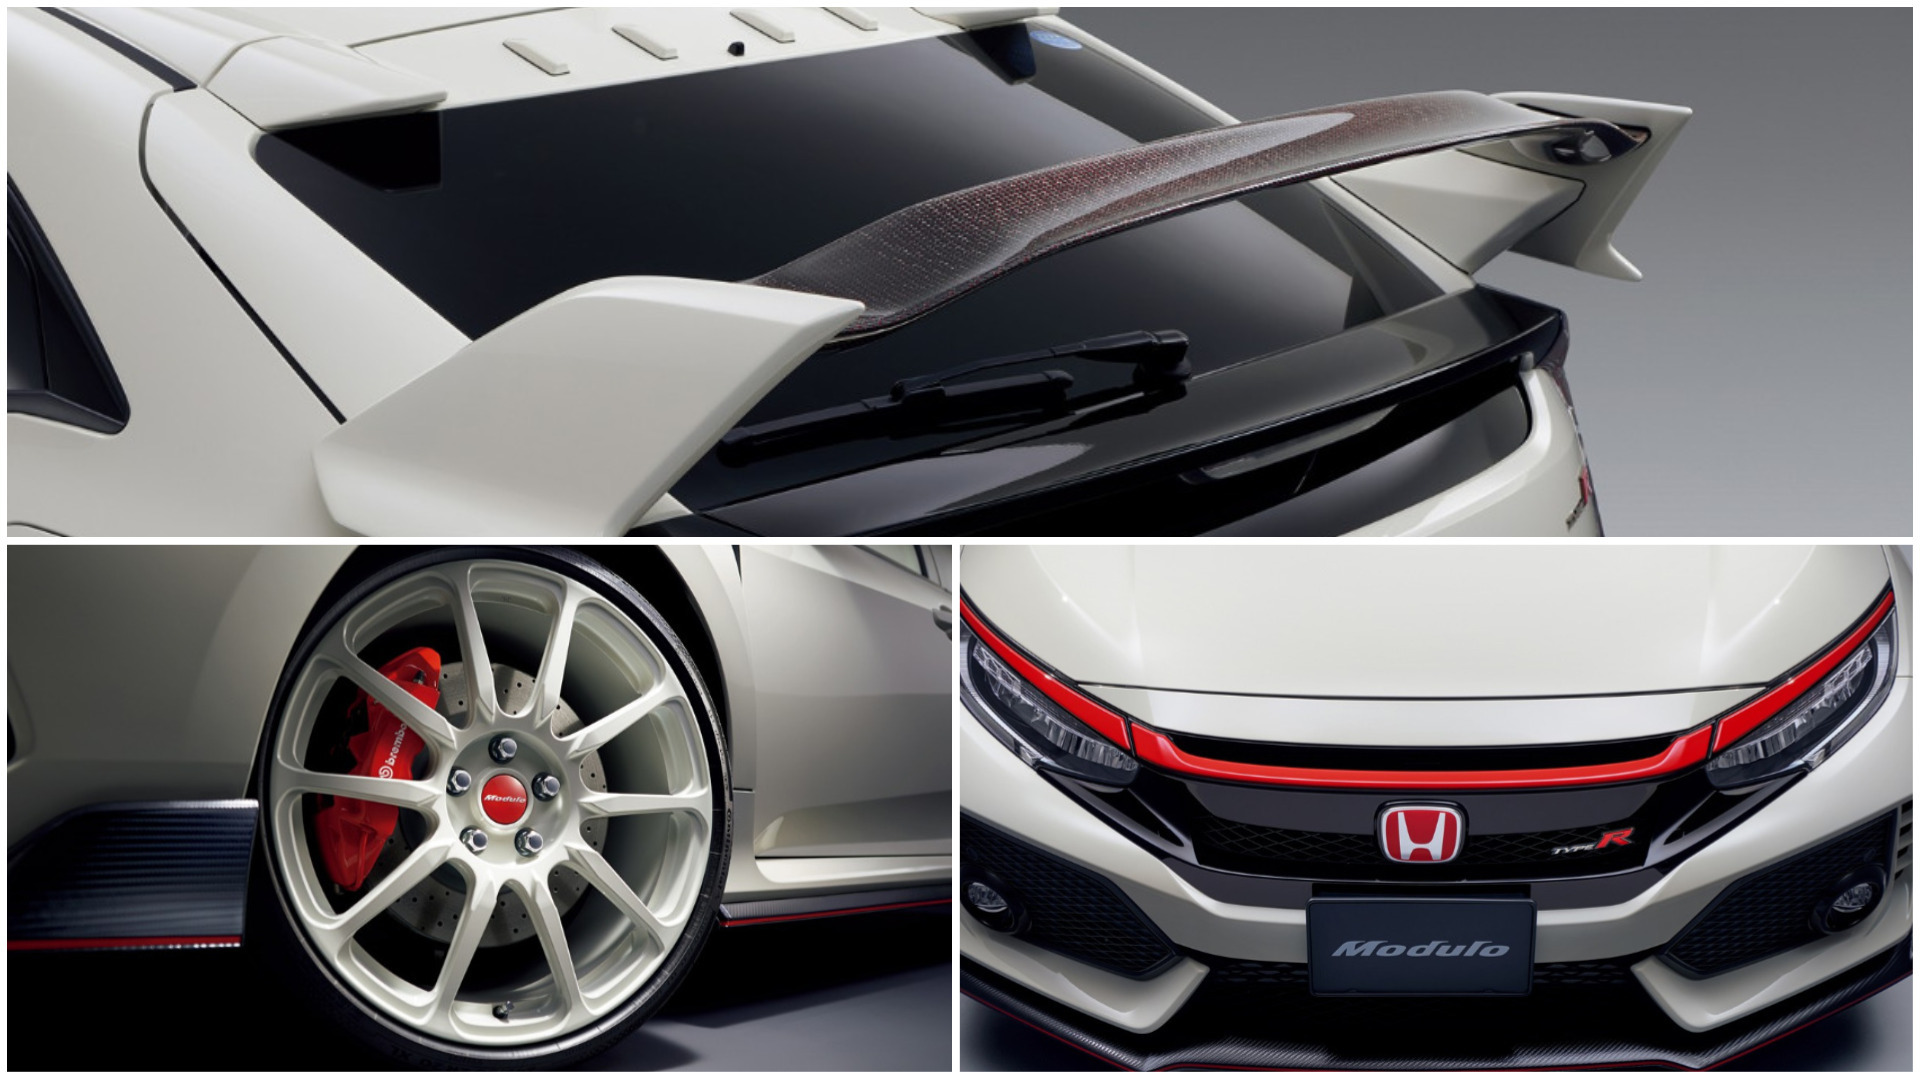 header automobiles sedan civic accessories com content honda image images